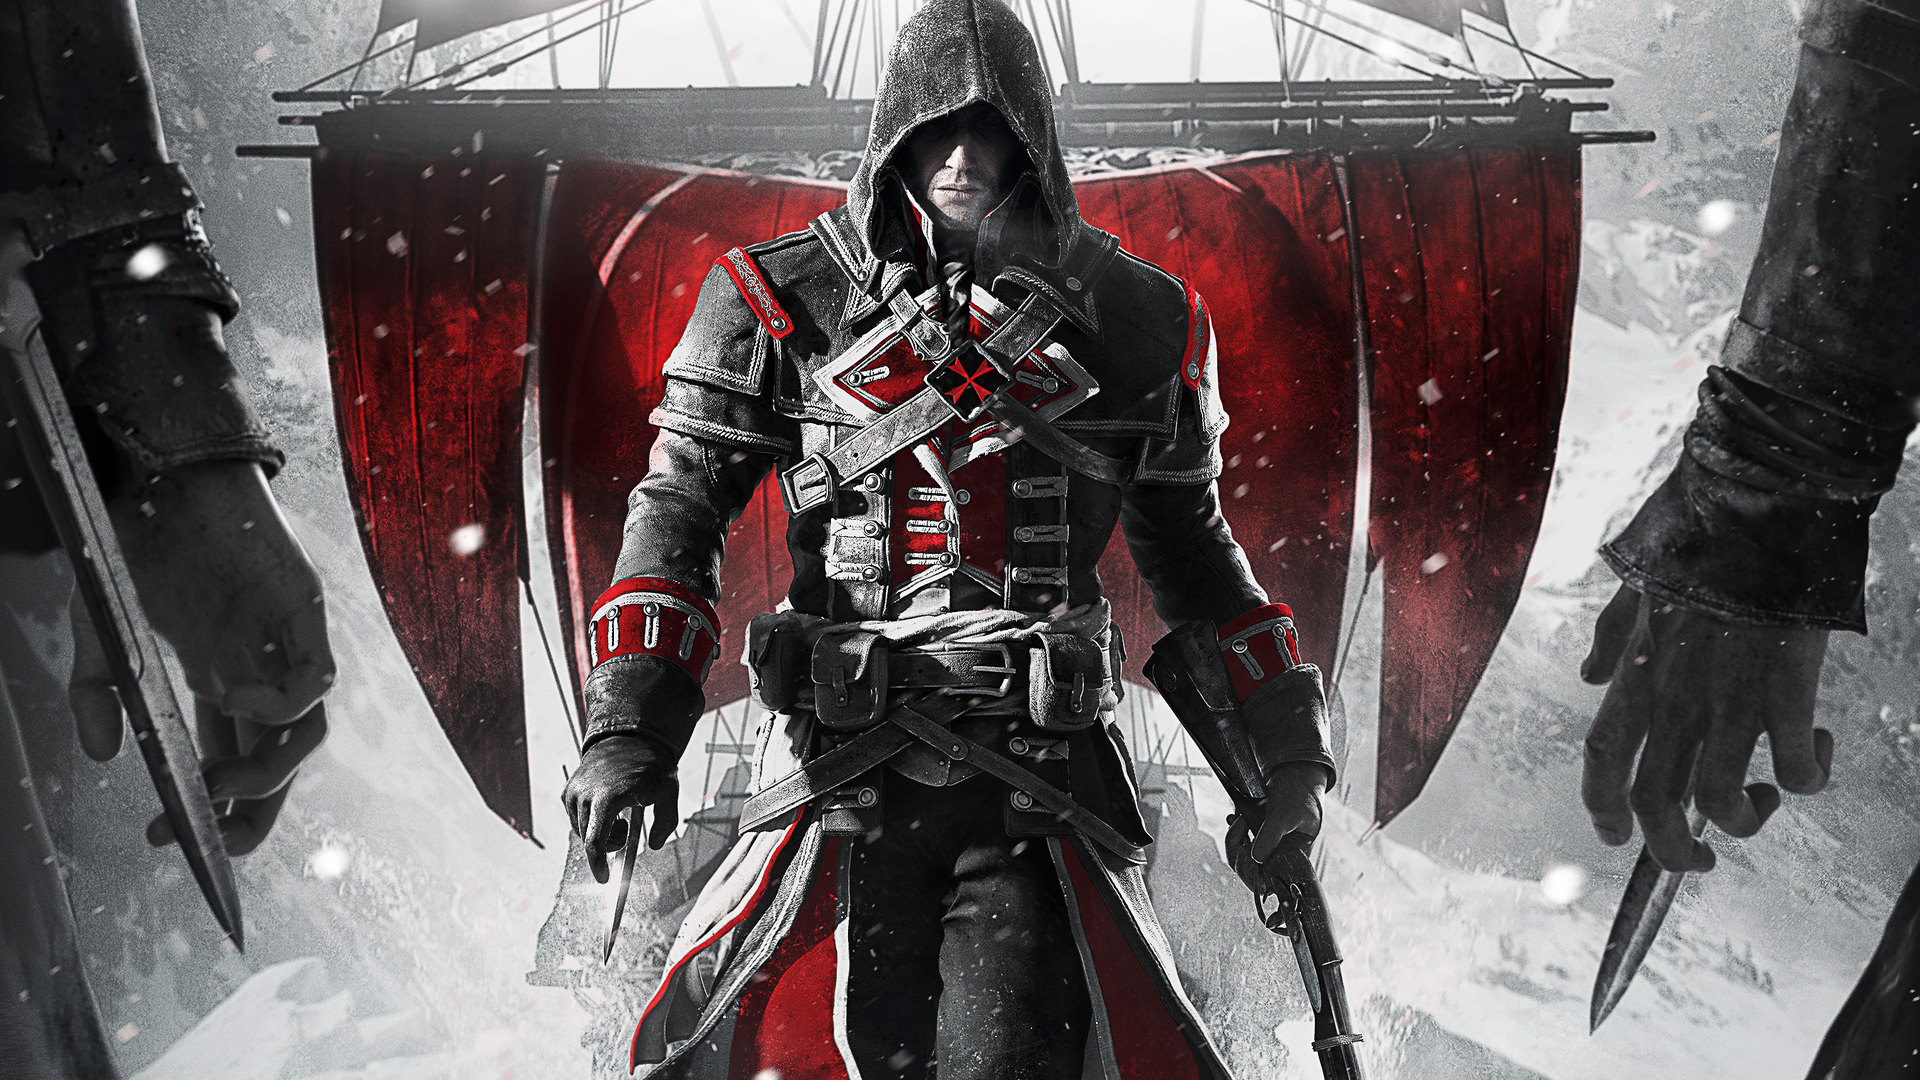 1920x1080 Assassins Creed Rogue Remastered Laptop Full Hd 1080p Hd